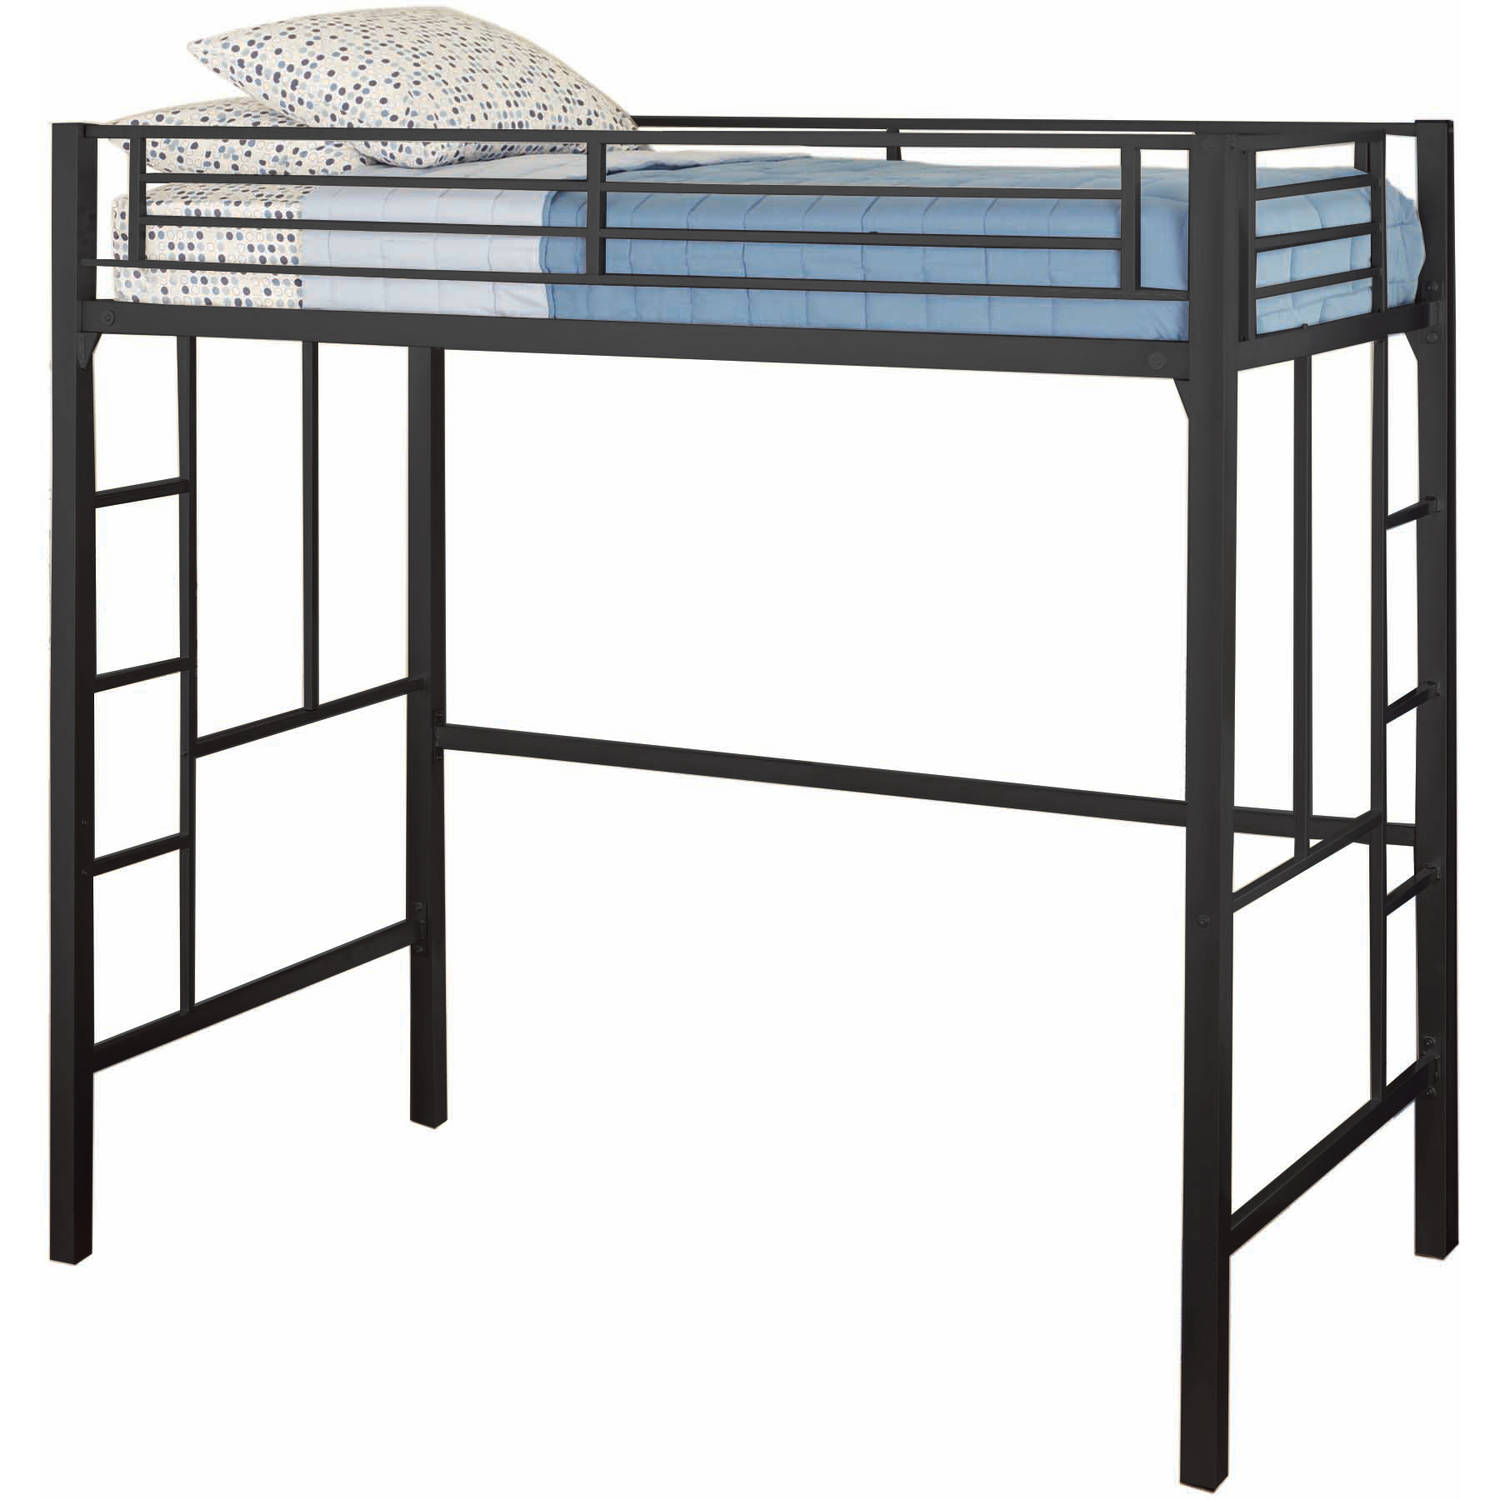 Twin Loft Bed With Ladder Metal Frame Bunkbed Kids Teens